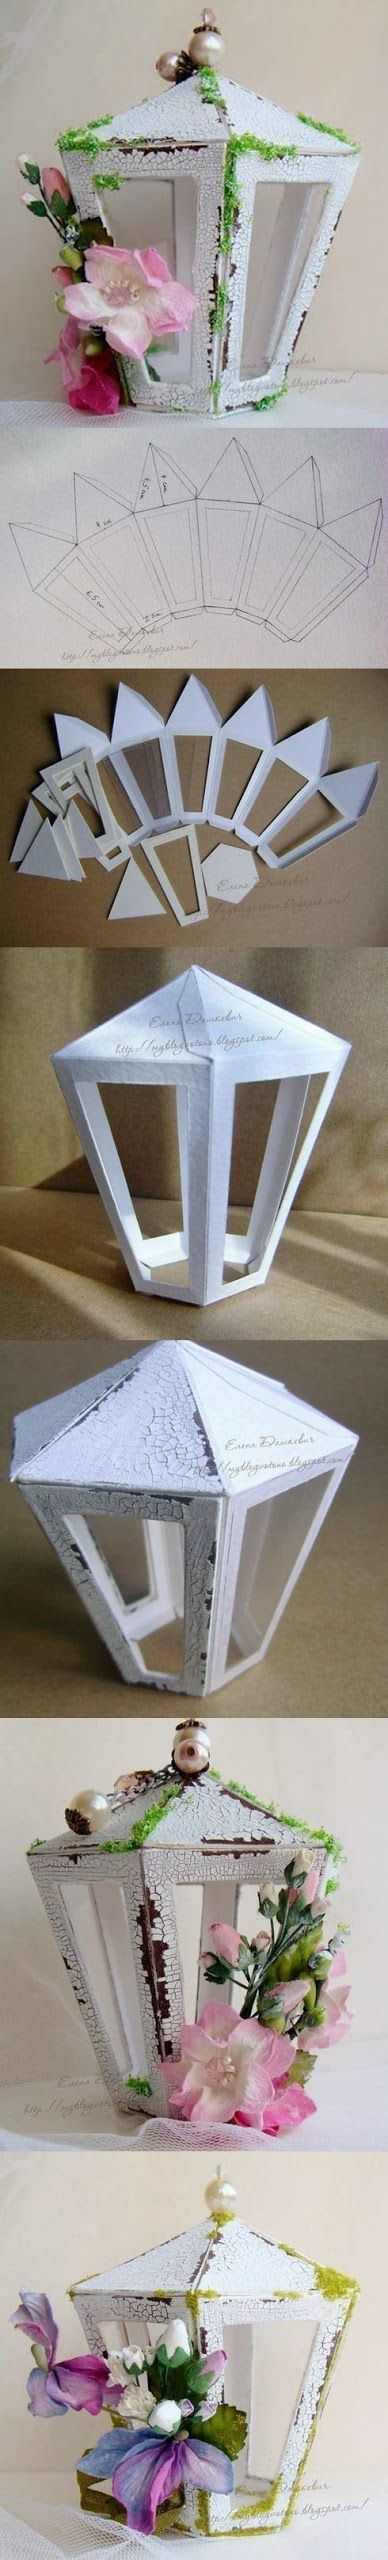 Cardboard Latern Template. This would make a cute fairy house! Could also be a Christmas ornament. --------------- with LED candle